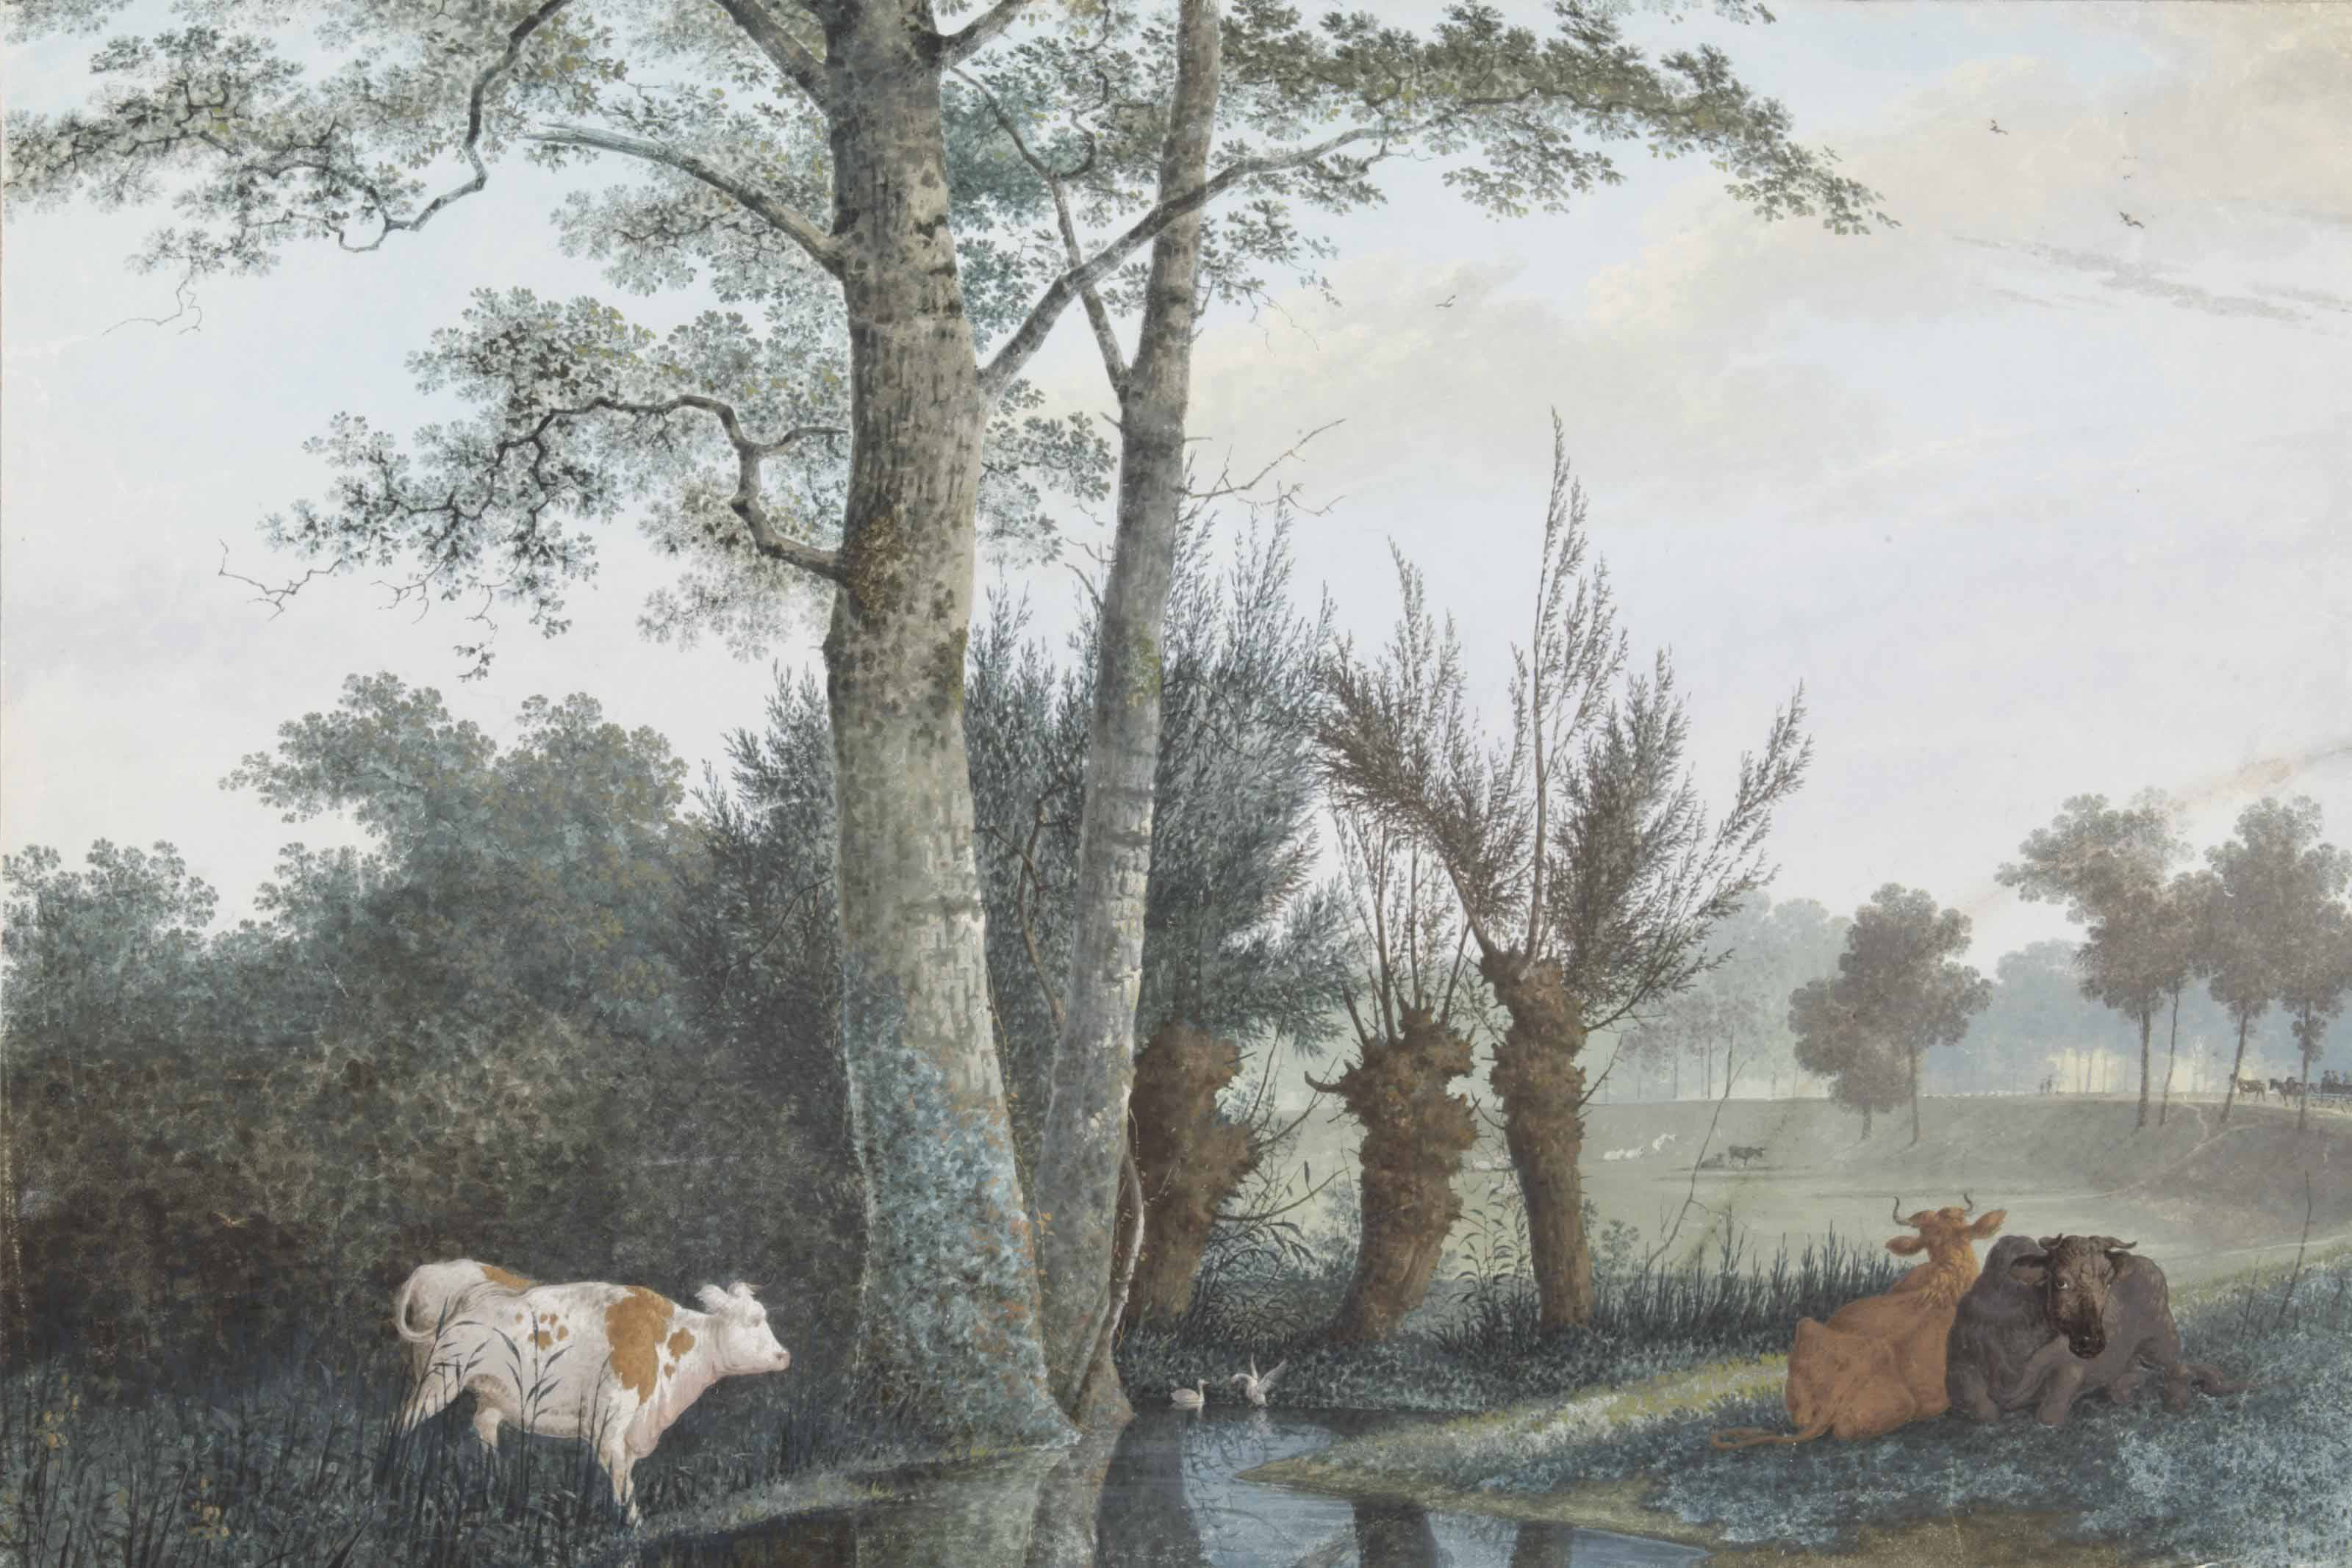 Cows resting beneath trees by a pond, with a carriage on a dyke beyond